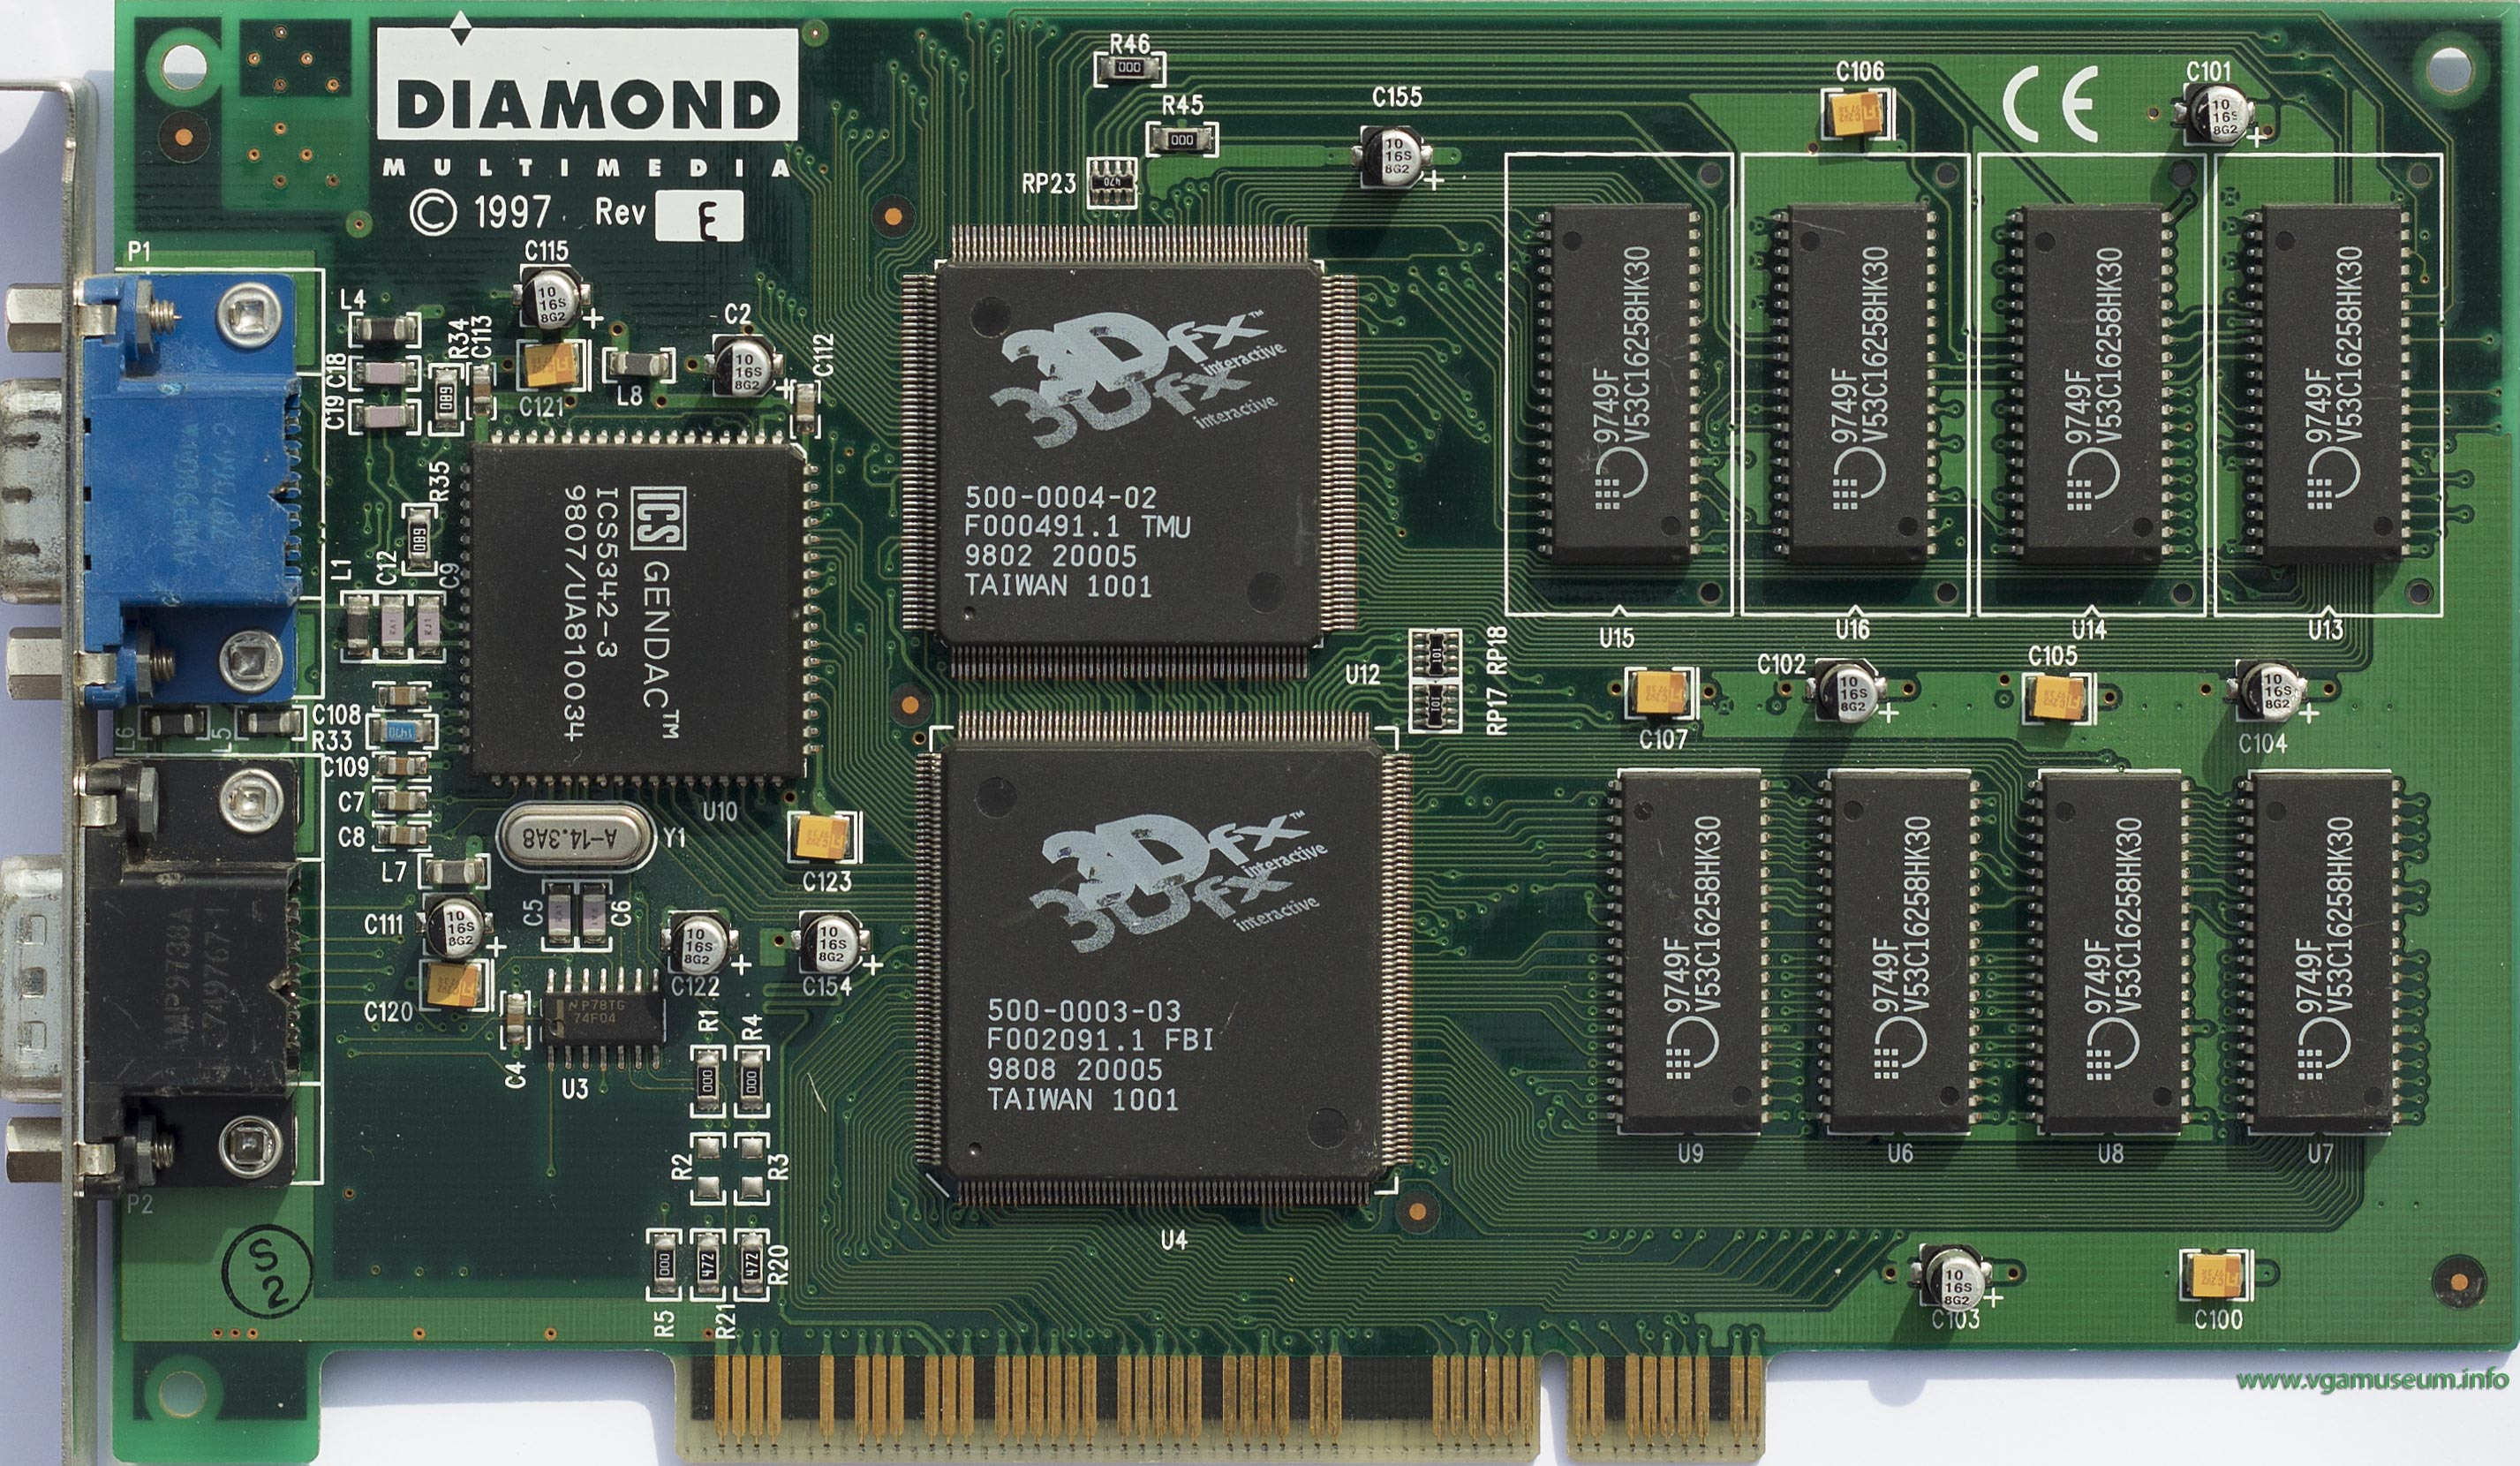 The story of the 3dfx Voodoo1